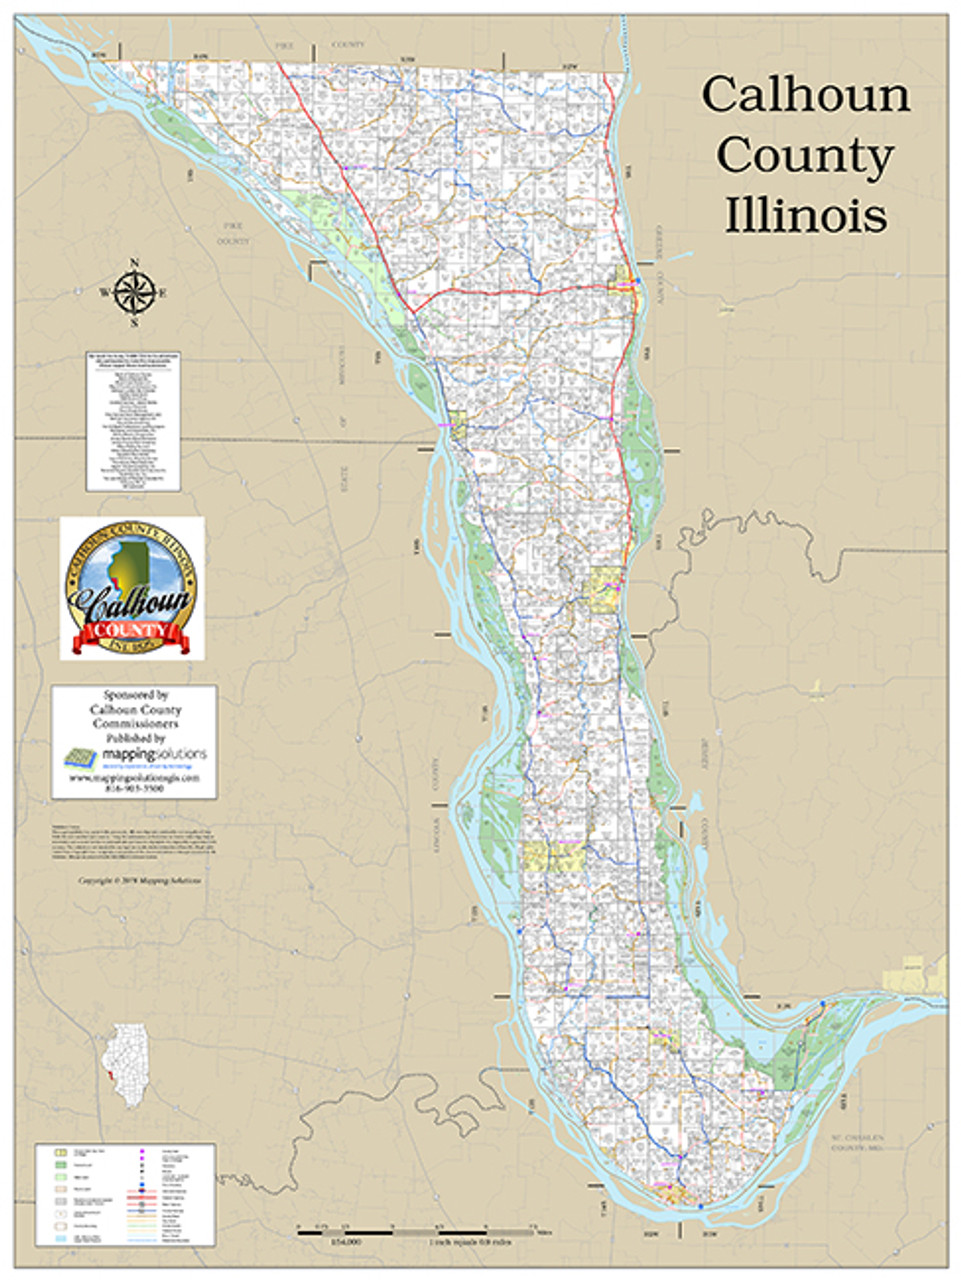 Calhoun County Illinois 2018 Wall Map | Mapping Solutions on